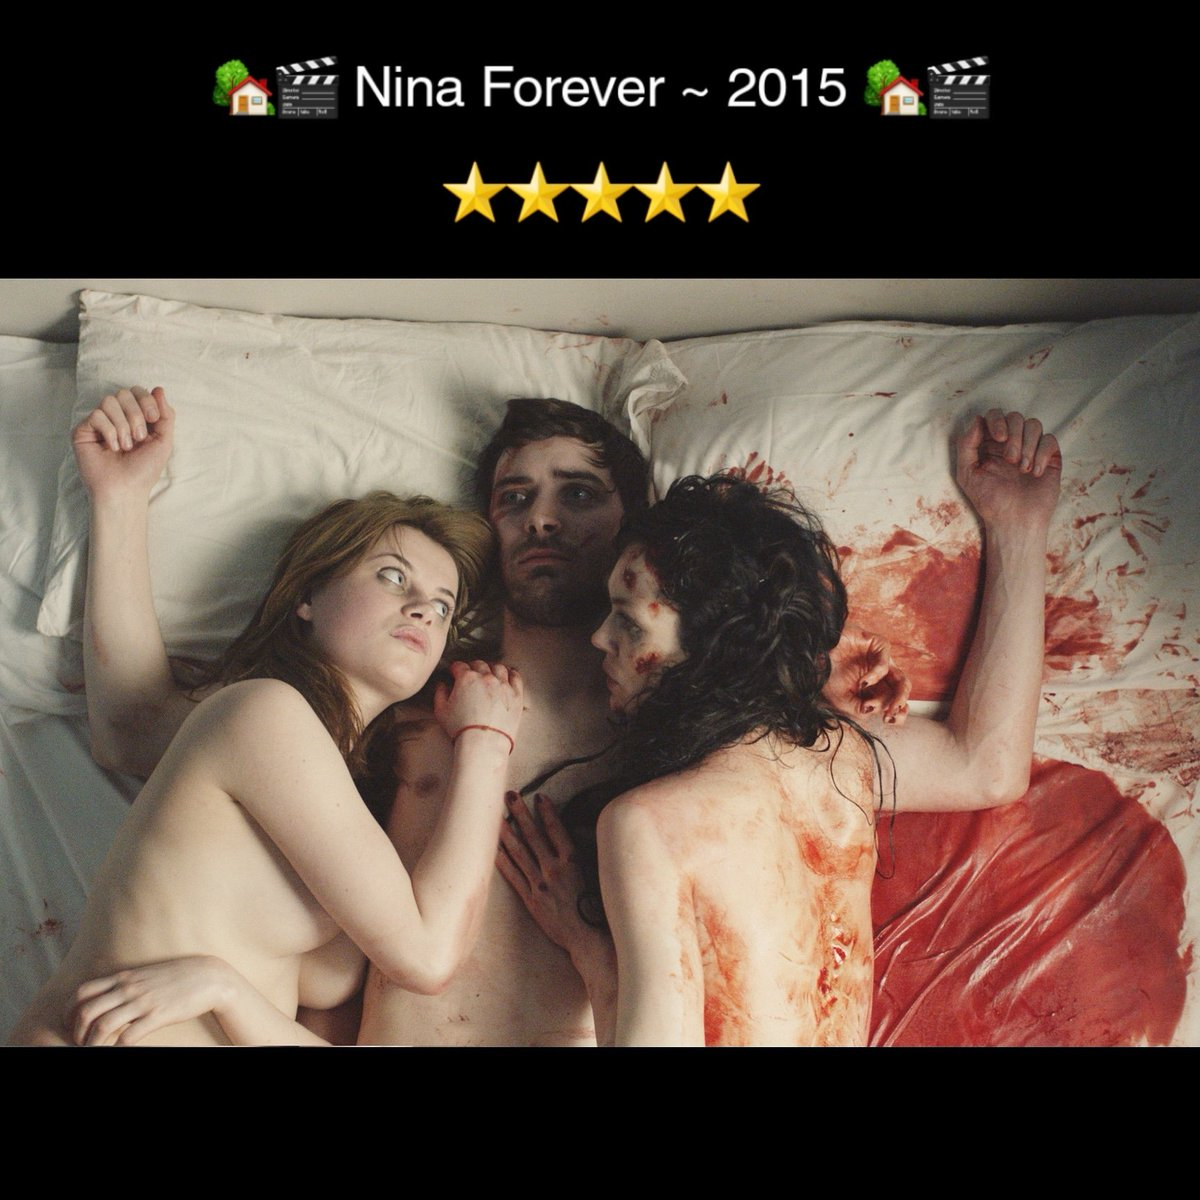 Nina Forever #movies #film #movie #cinema #films #hollywood #actor #love #actress #art #s #cinematography #music #netflix #bollywood #filmmaking #horror #comedy #instagood #photography #moviescenes #tv #cine #director #drama #filmmaker #cinephile #movienight #instagram #bhfyppic.twitter.com/3OVtRY4pLc